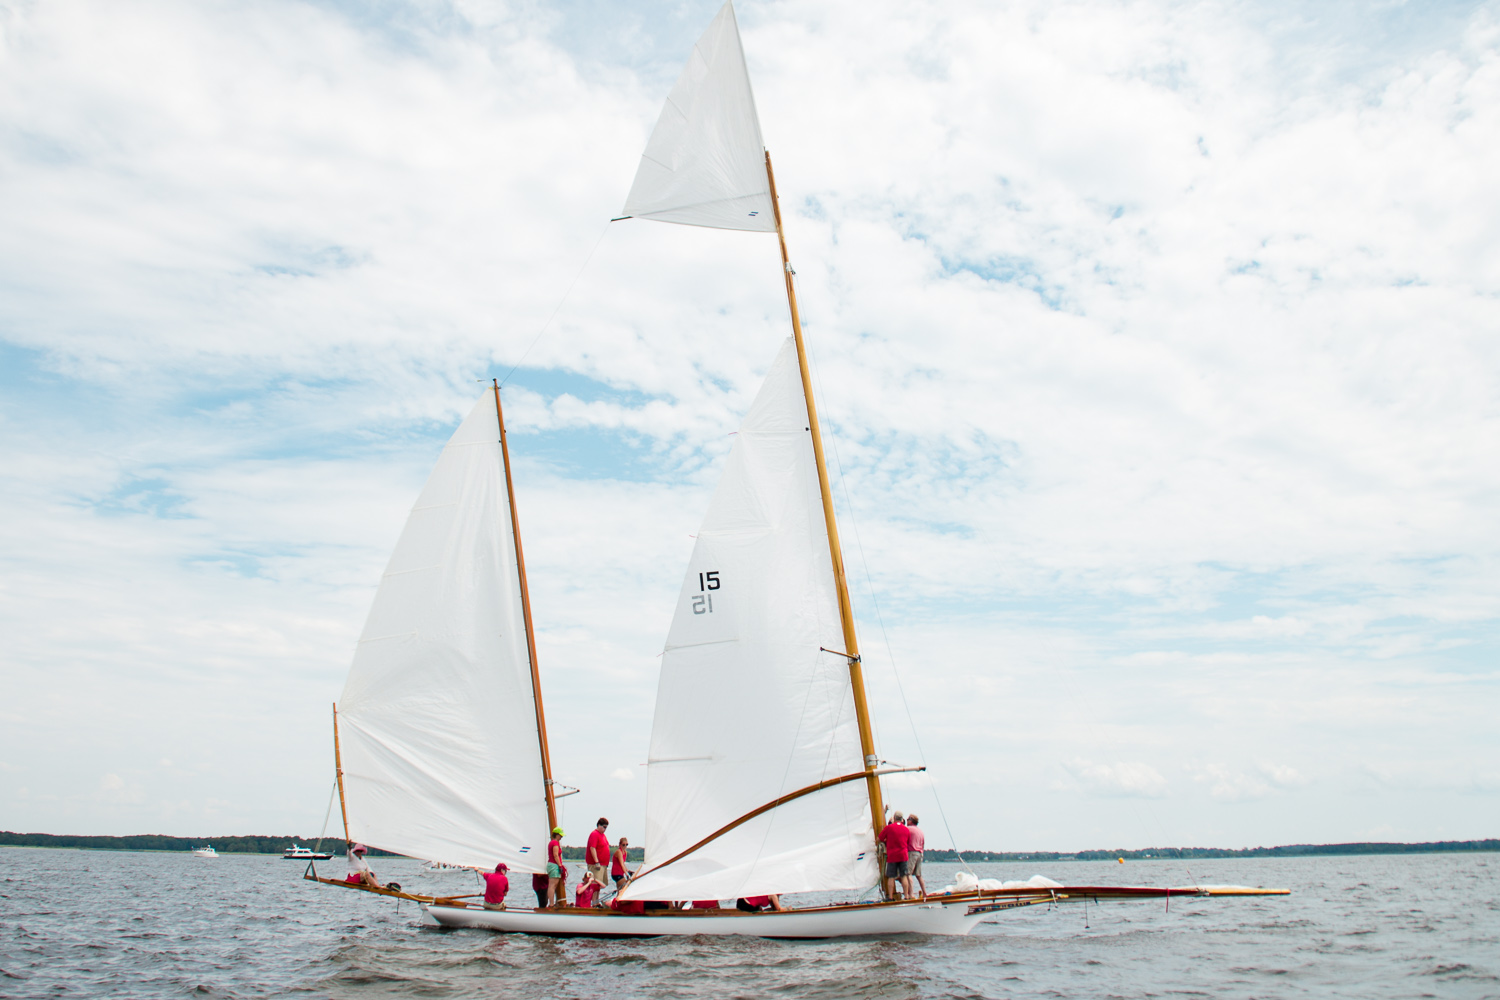 Log-Canoe-Race-at-Rock-Hall-Yacht-Club-July-2016-ss-4.jpg